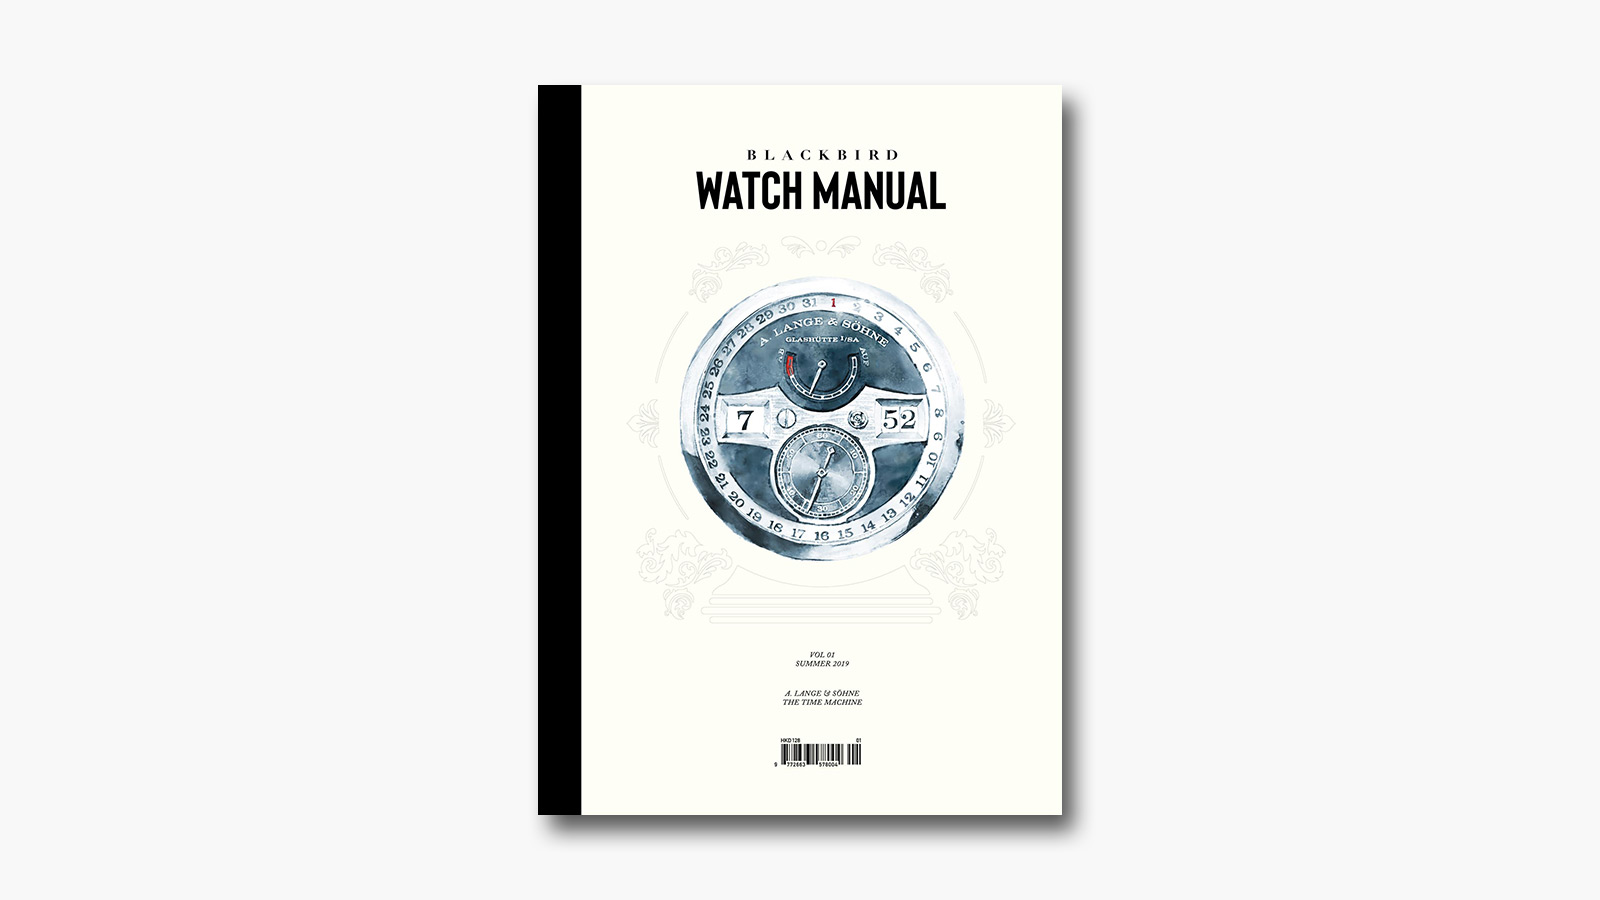 Blackbird Watch Manual Vol. 1